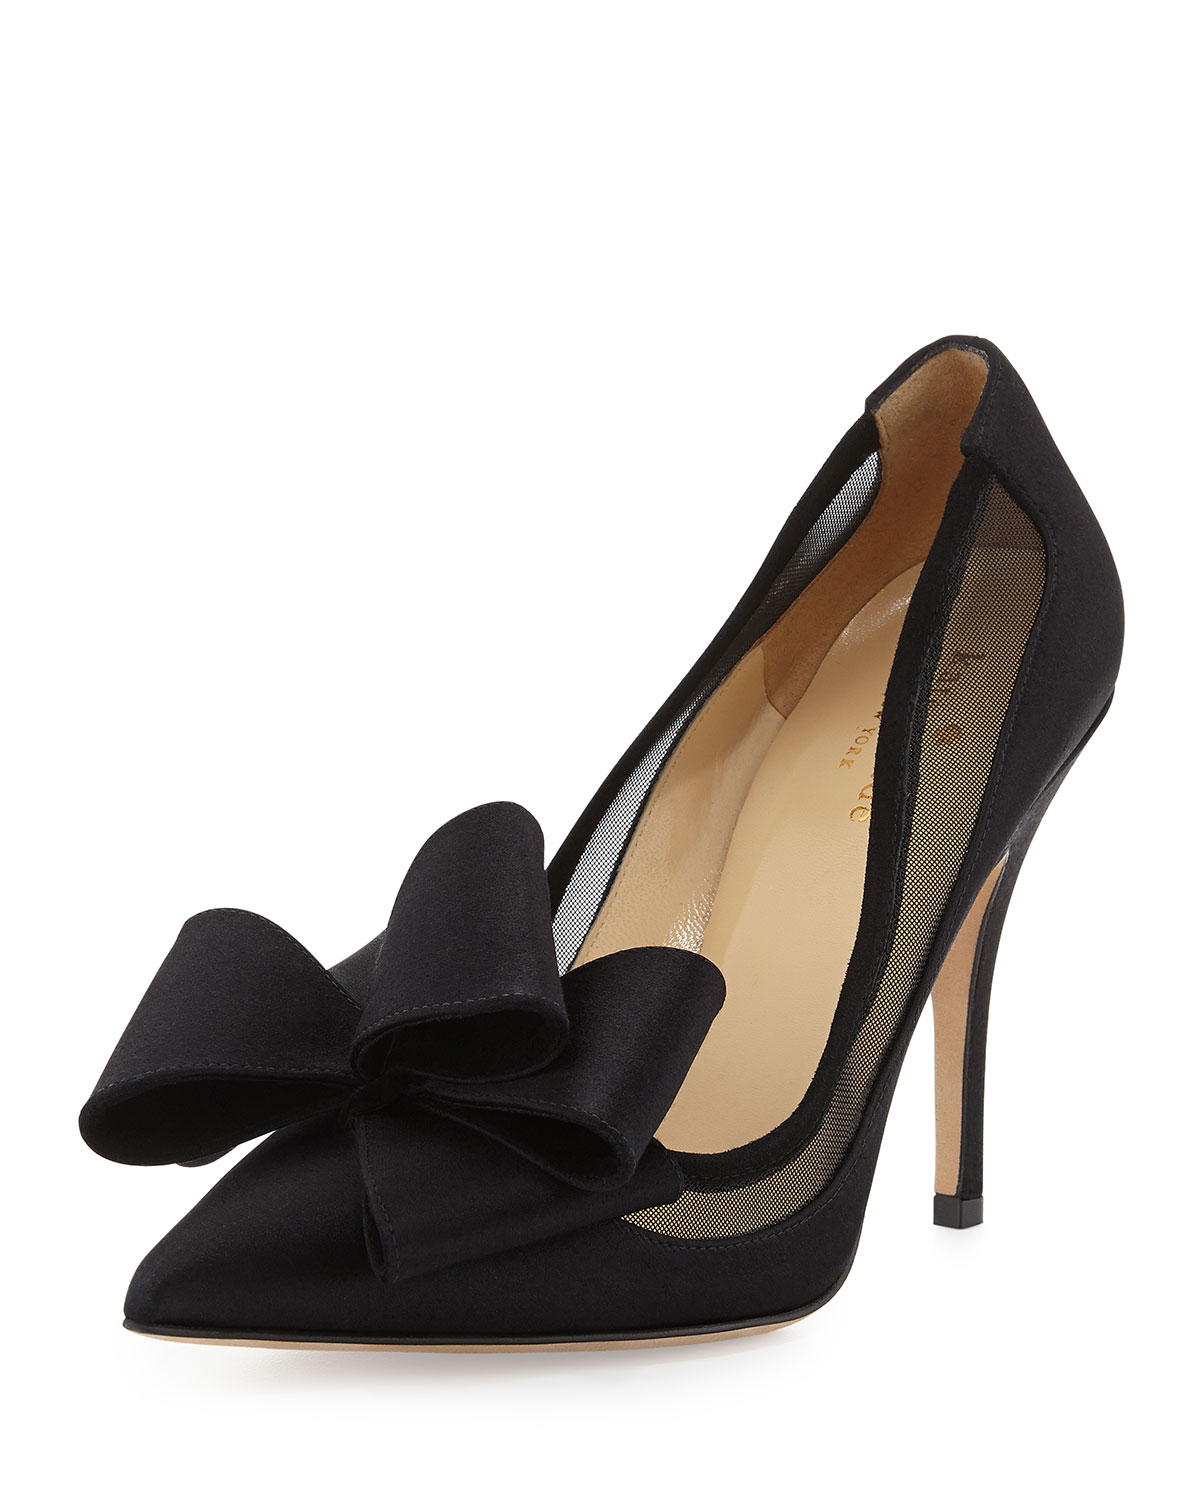 lovely satin bow pump, black   kate spade new york   Black (36.0B/6.0B)